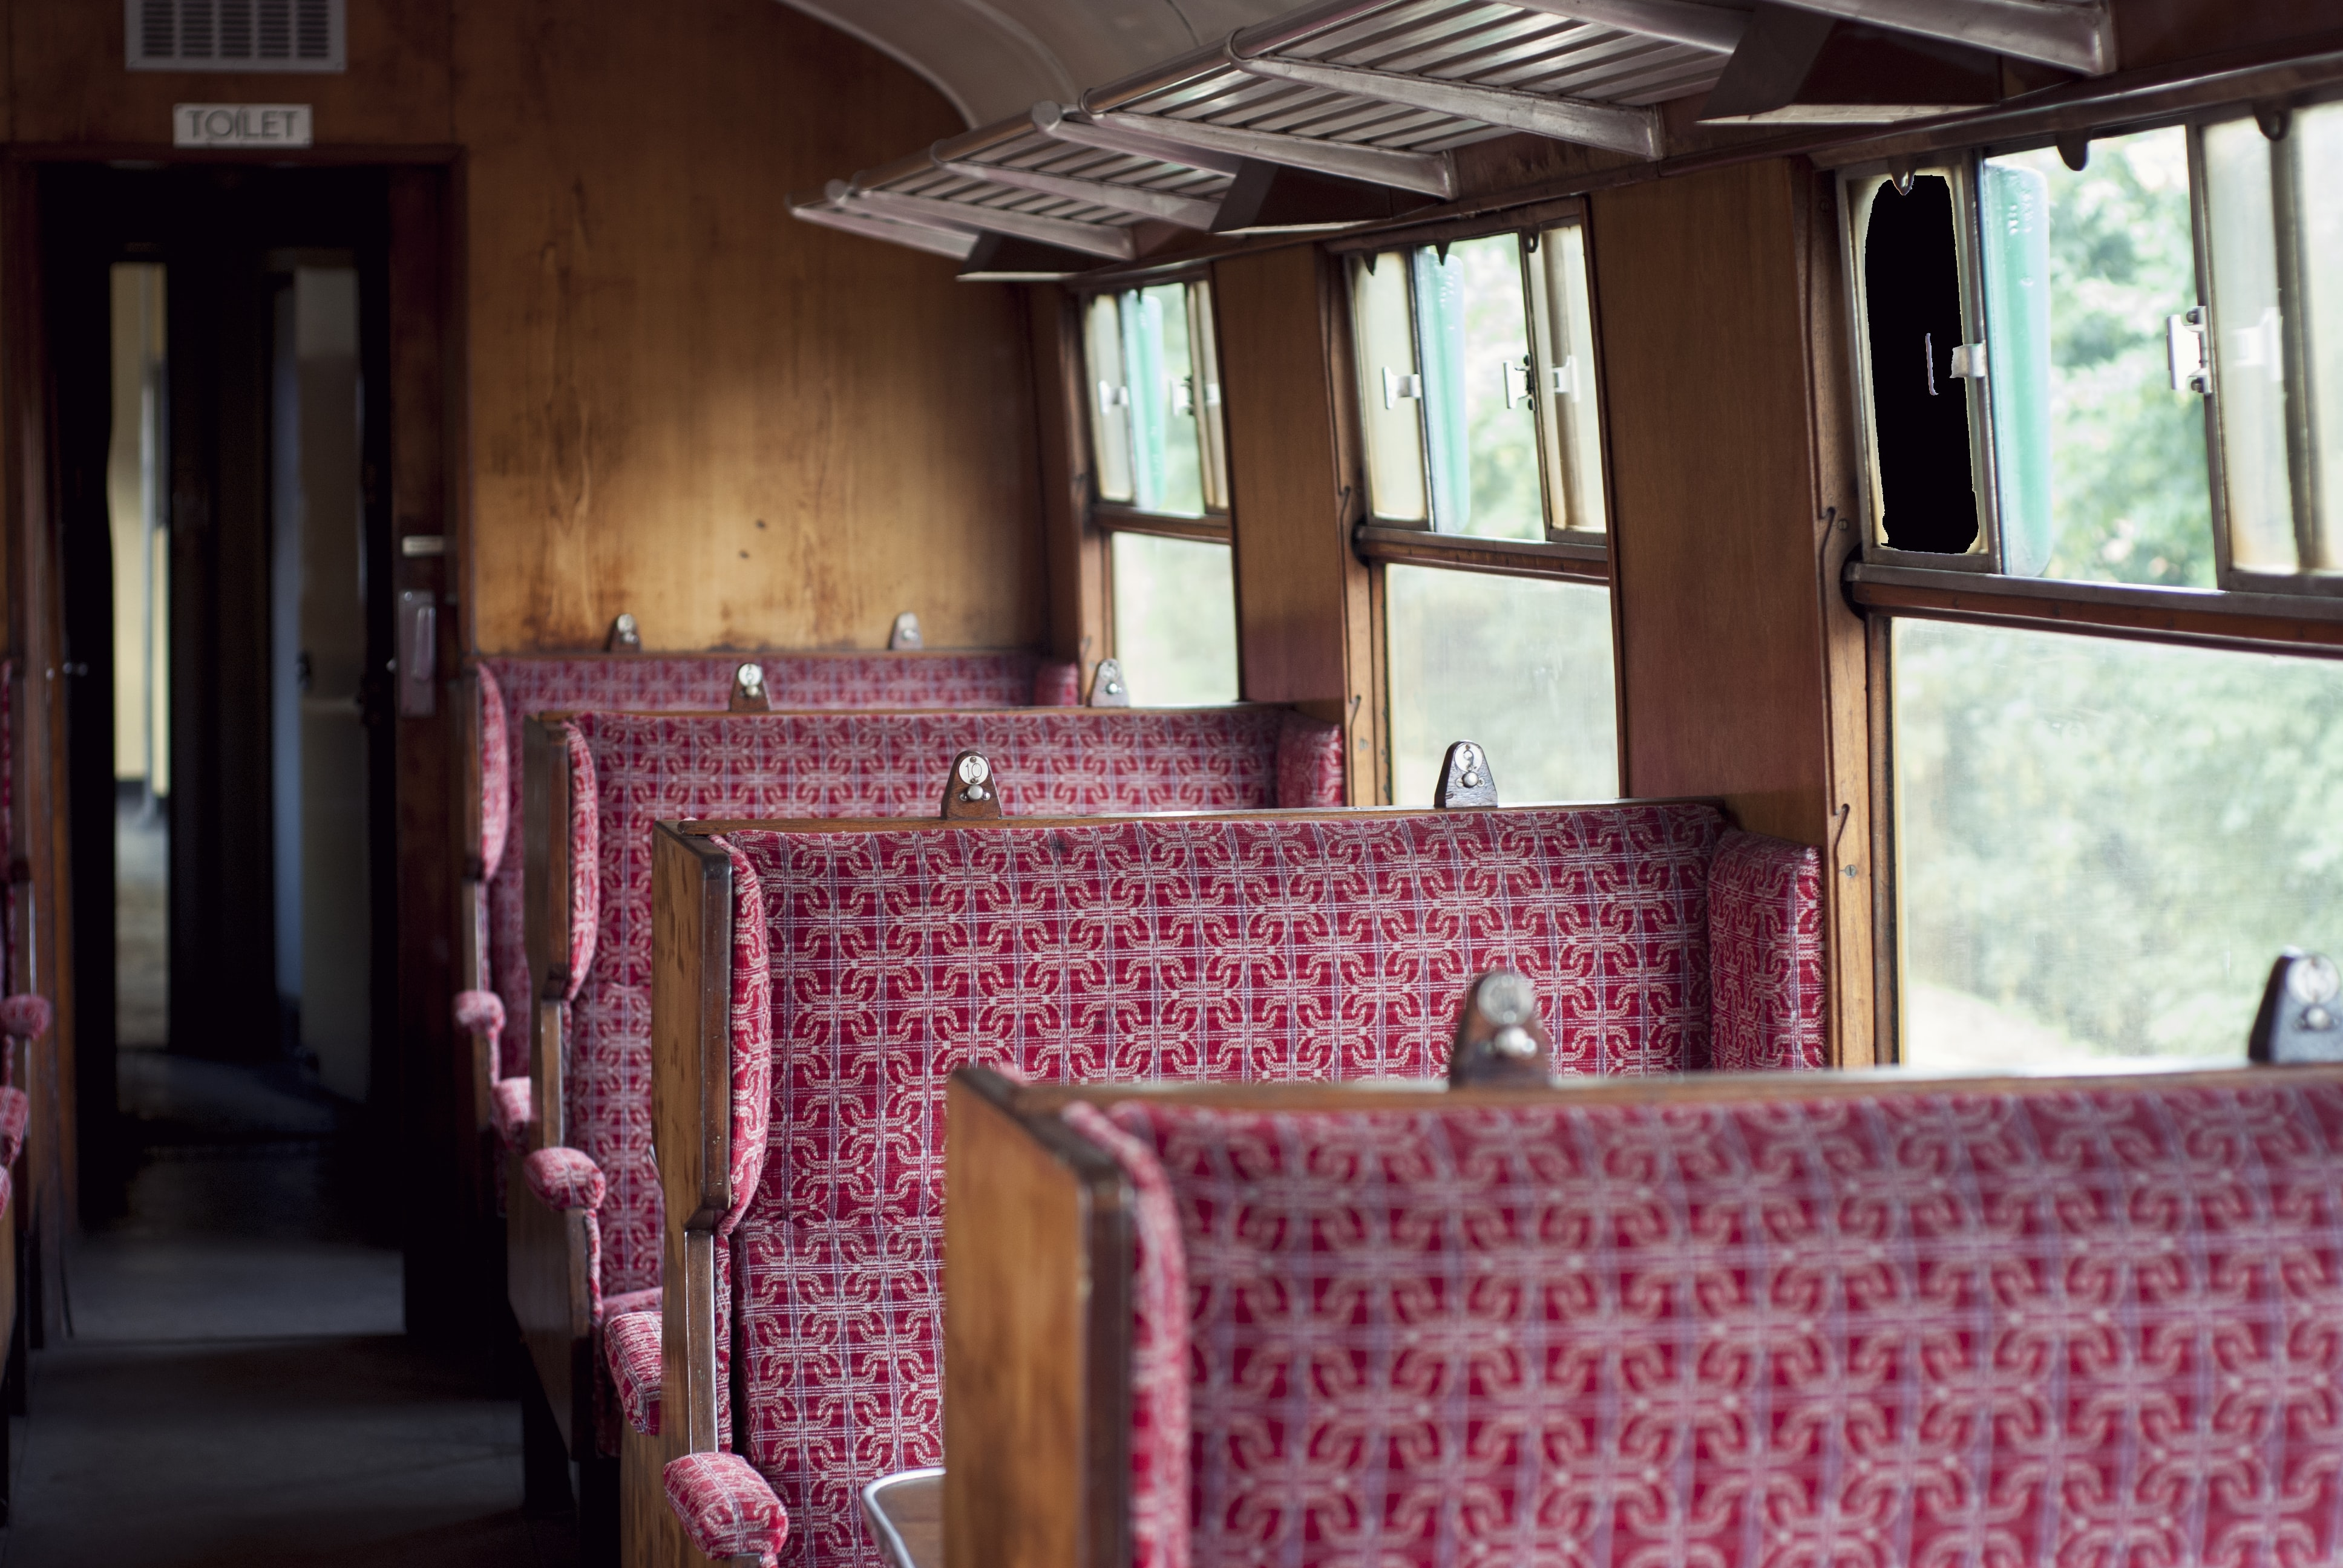 Interior of the old vintage British railway passenger carriage with wooden benches in Ropley